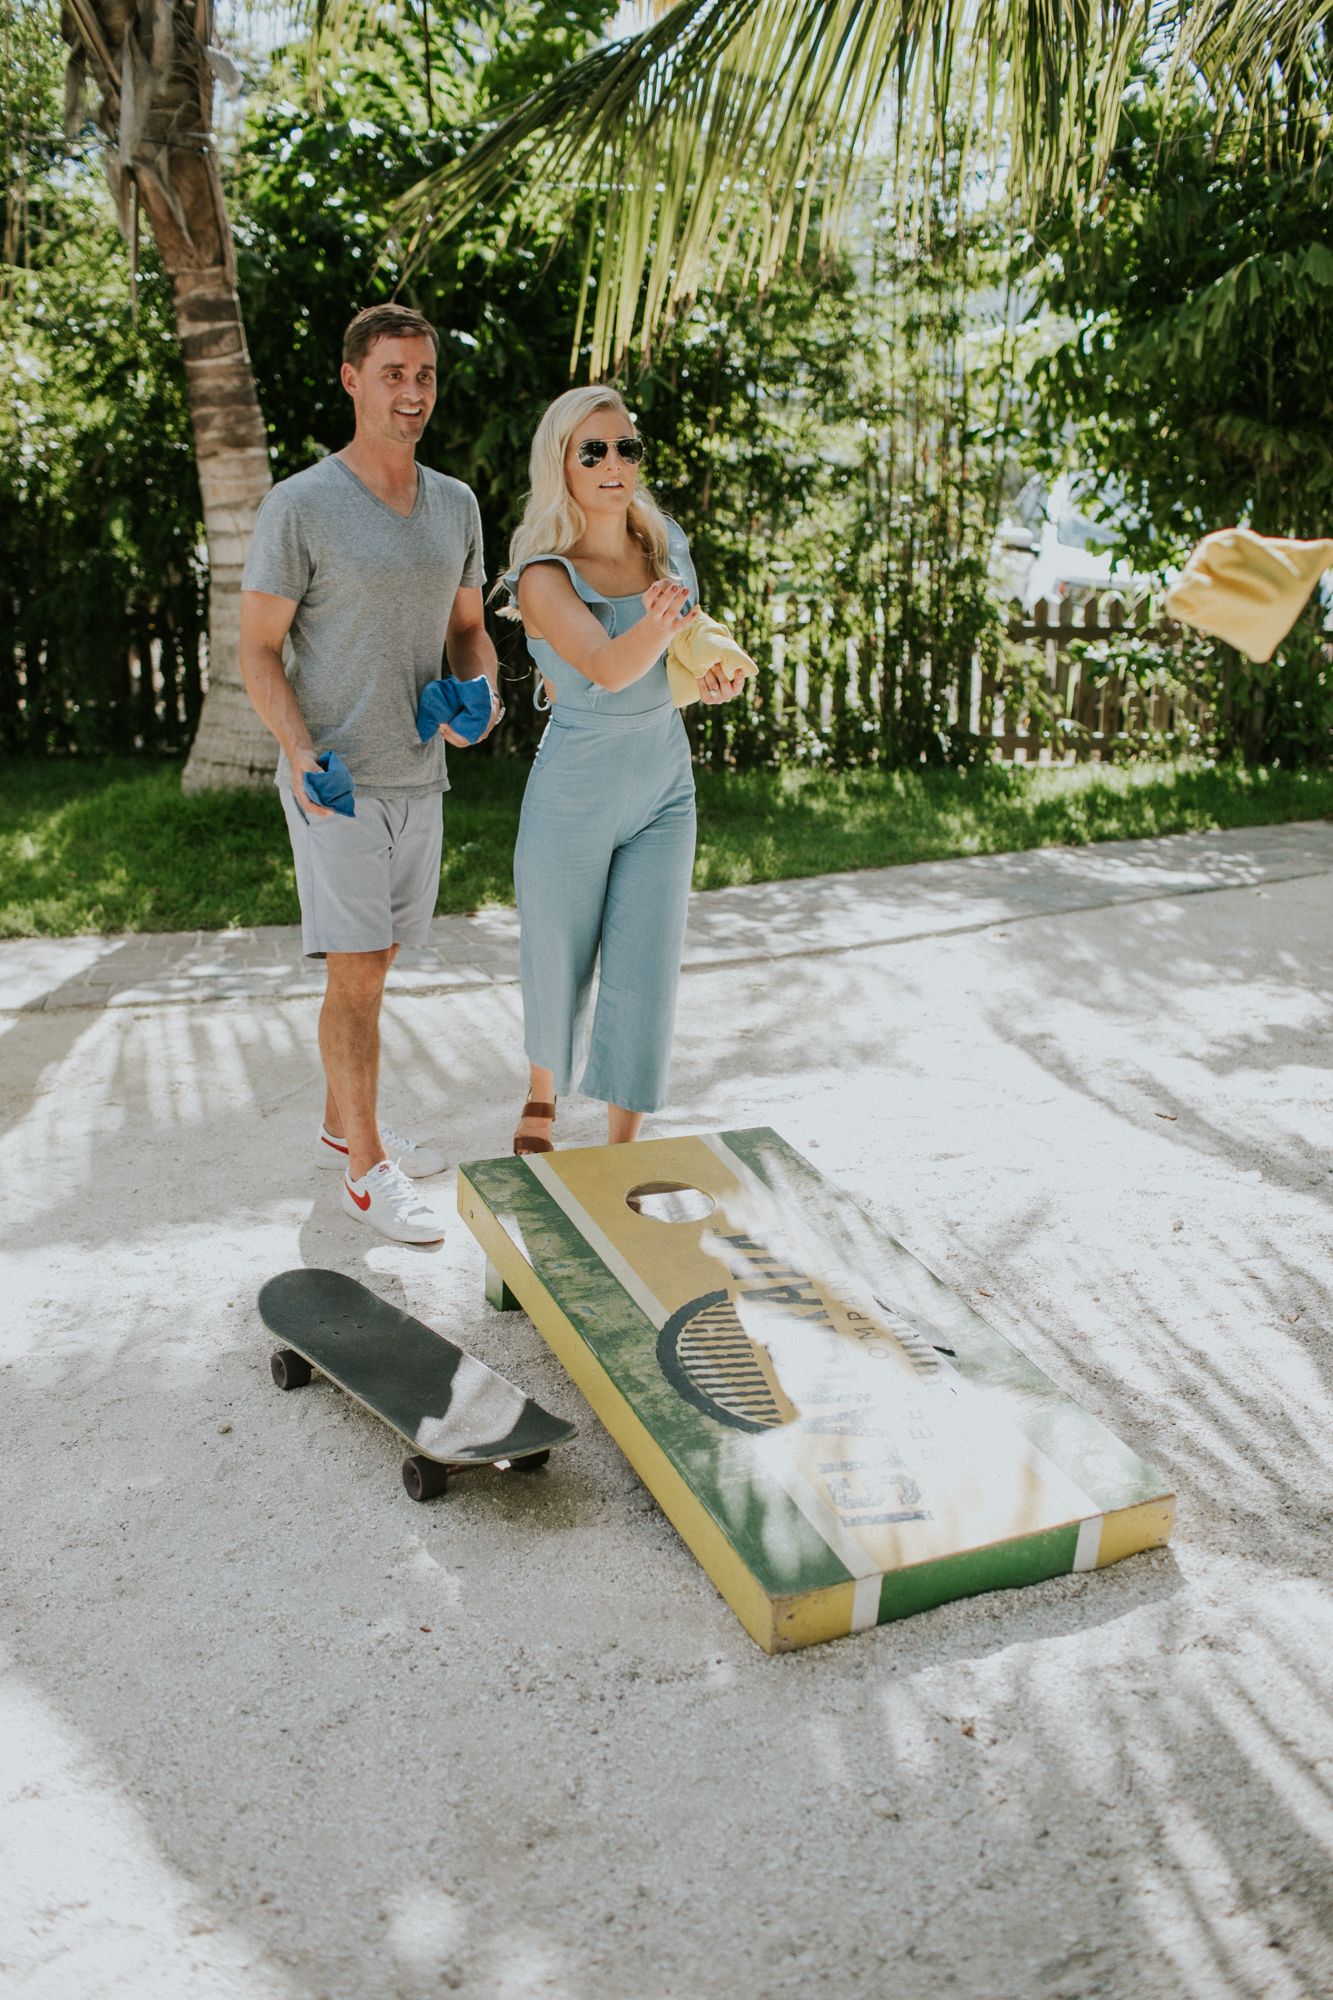 Cornhole game during an engagement shoot in the florida keys